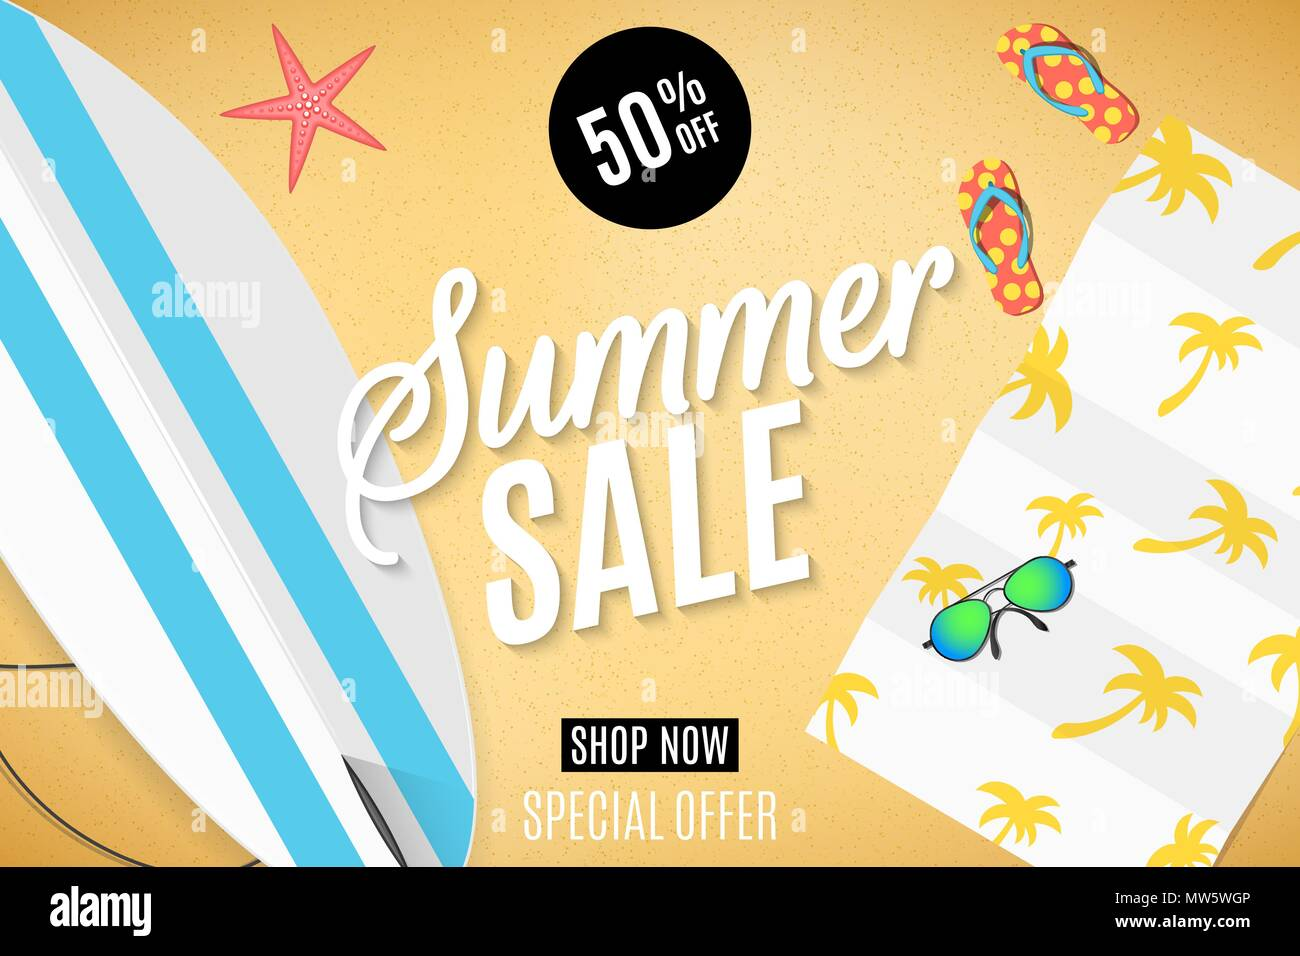 856d42bd4065 Summer sale banner for web. Surfboard on the beach